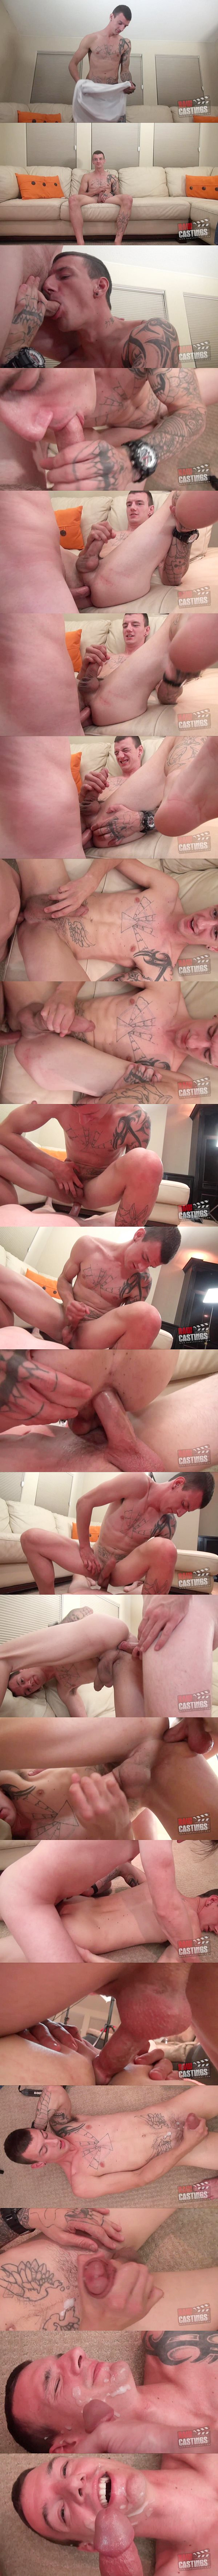 Hot straight dude Brad Davis gets his cherry popped up raw in Casting 619 at Rawcastings 02